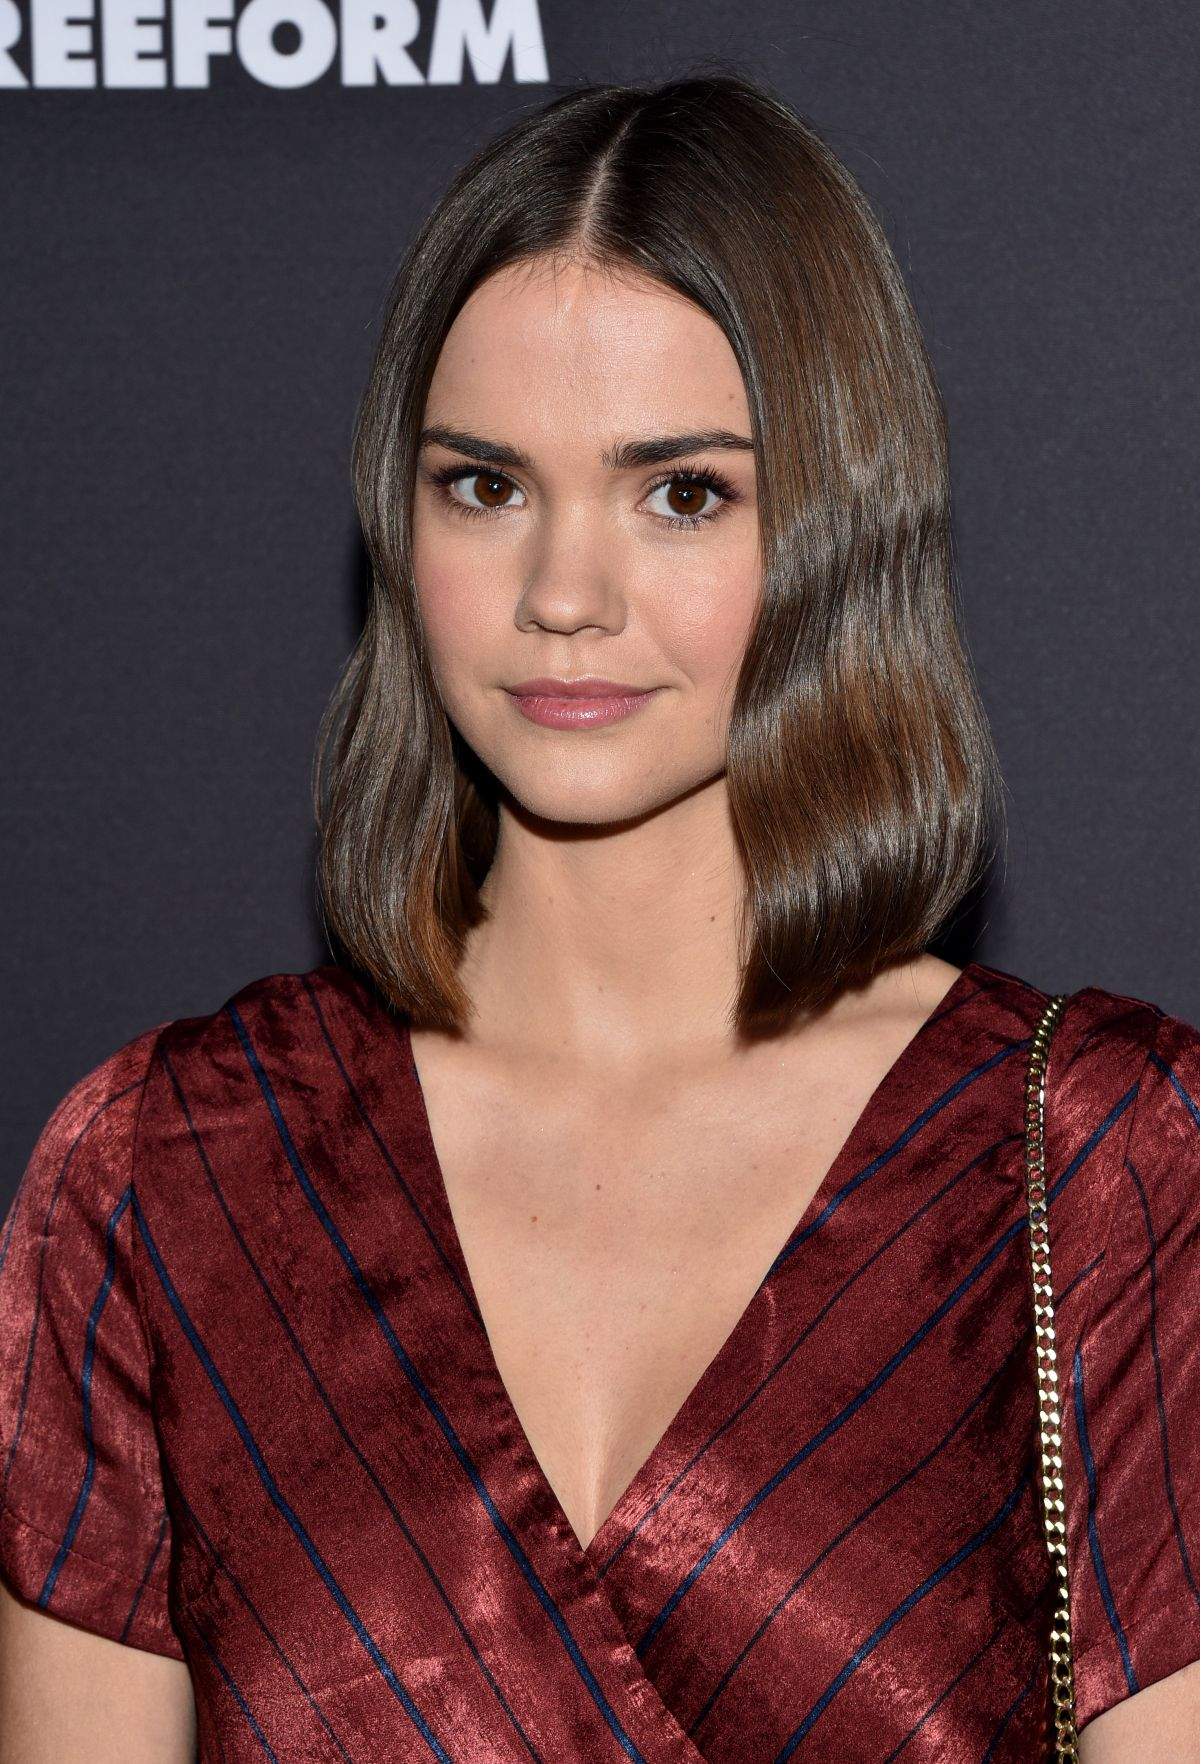 Images Maia Mitchell nude photos 2019